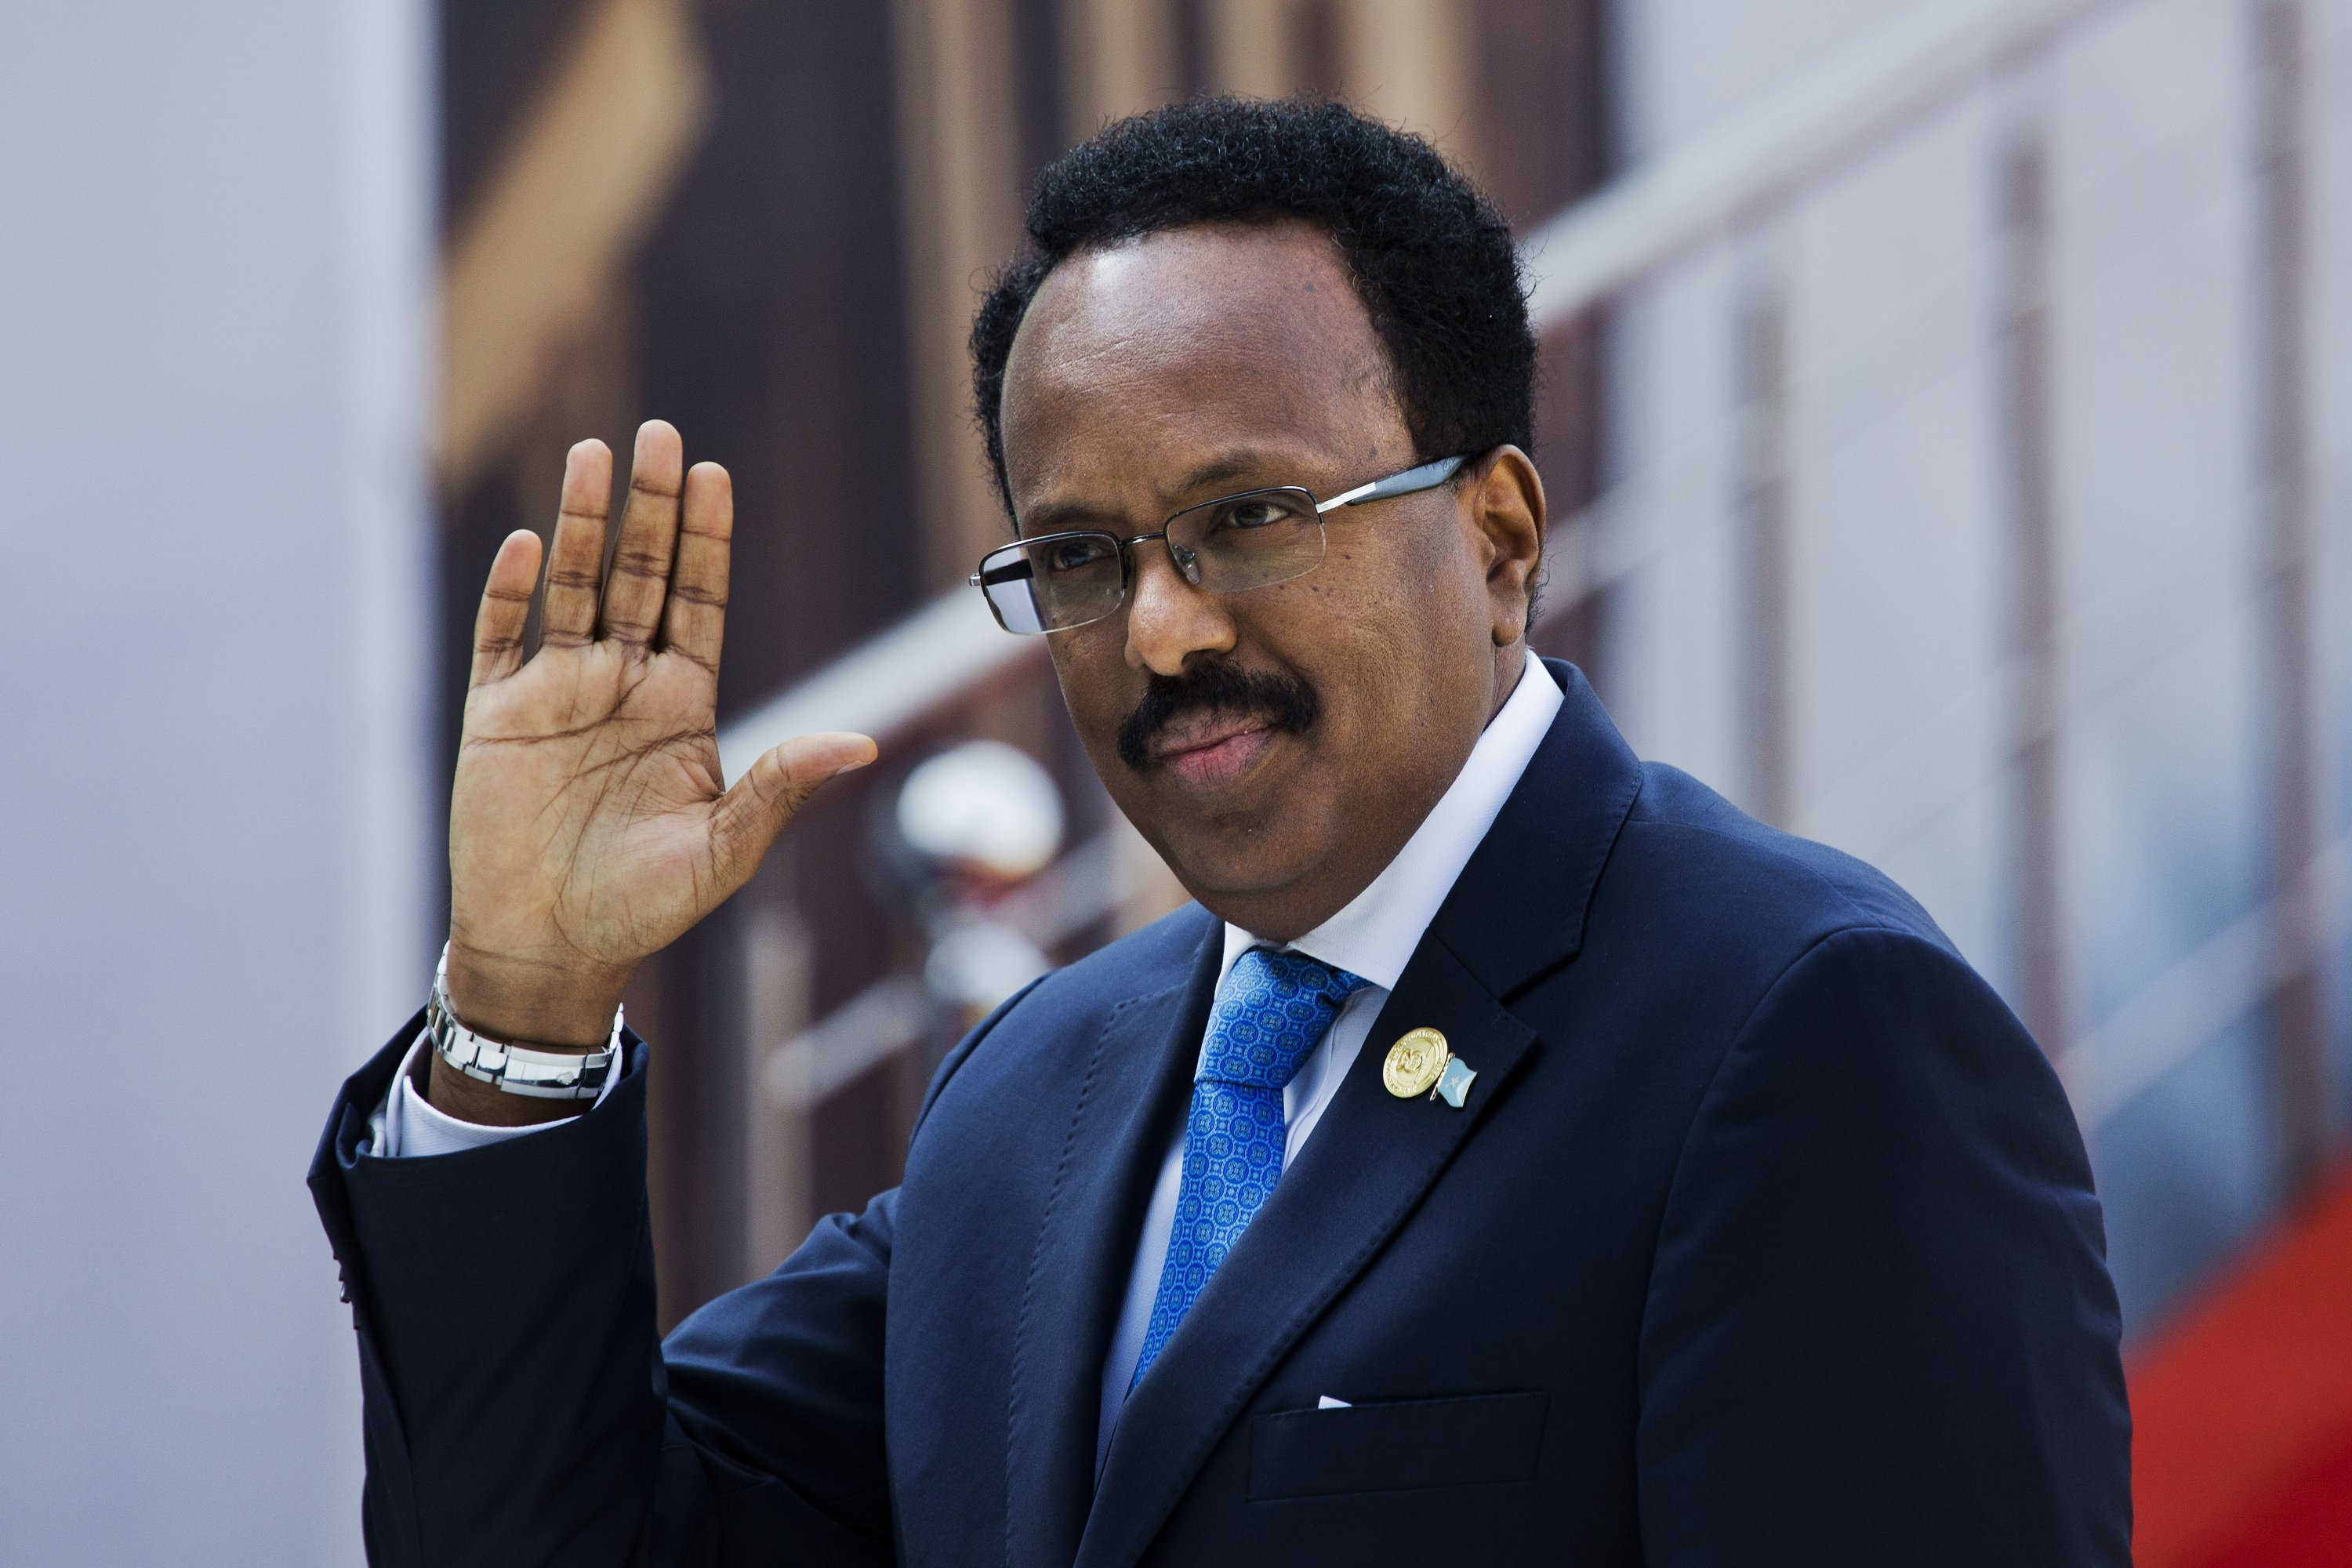 Somalia's President Mohamed Abdullahi Mohamed arrives for the swearing-in ceremony of South African President Cyril Ramaphosa at Loftus Versfeld stadium in Pretoria, South Africa, May 25, 2019. (AP Photo)